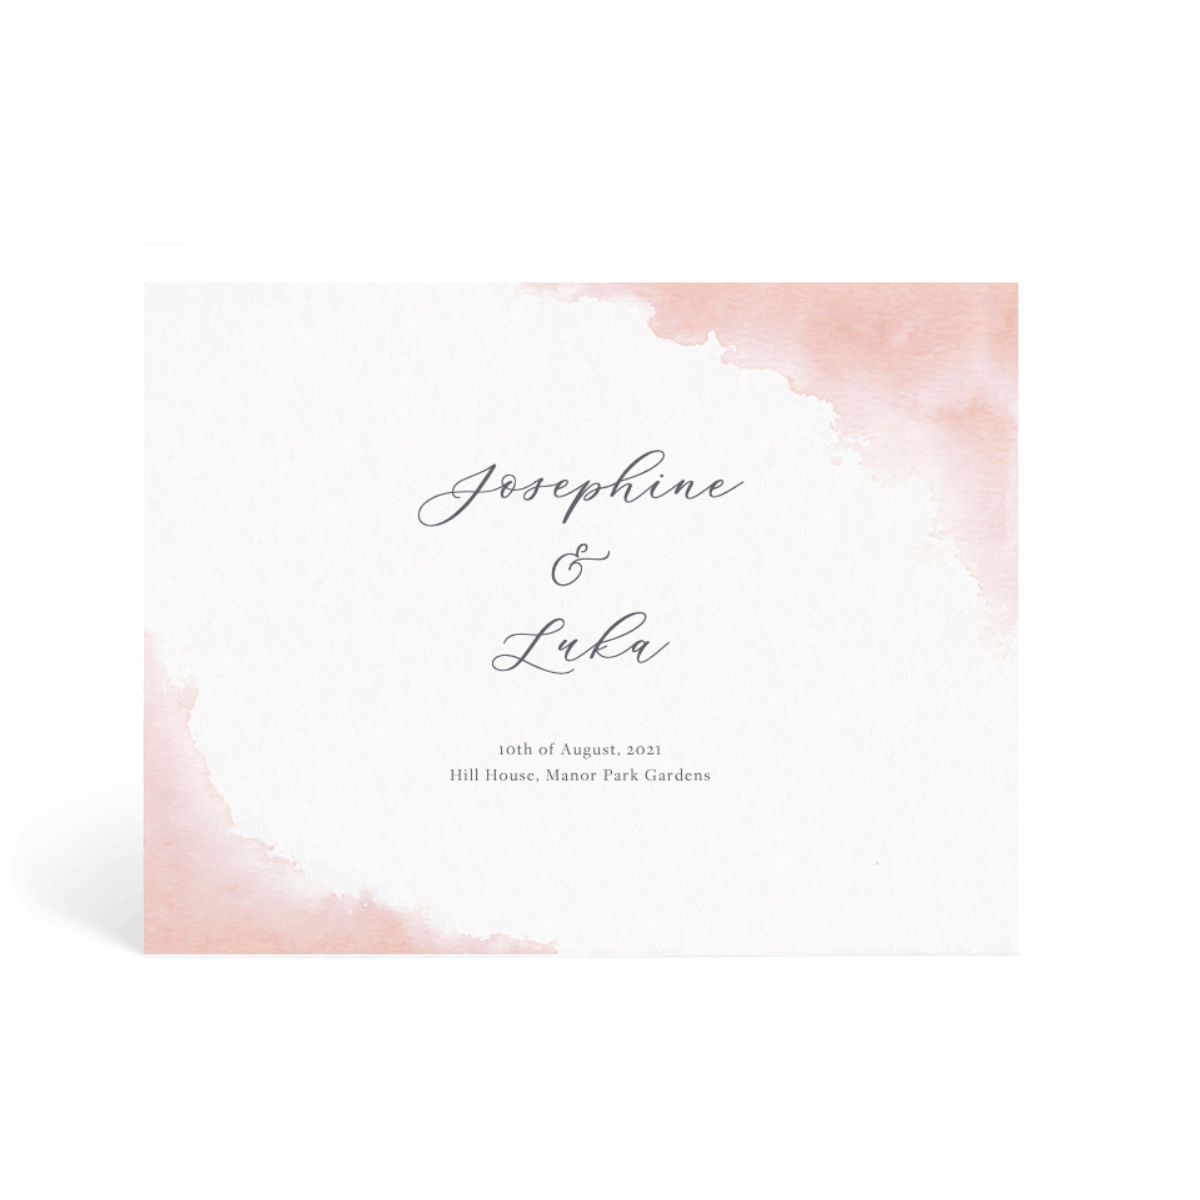 Https%3a%2f%2fwww.papier.com%2fproduct image%2f99516%2f28%2fwatercolour blush 25403 front 1578343013.png?ixlib=rb 1.1